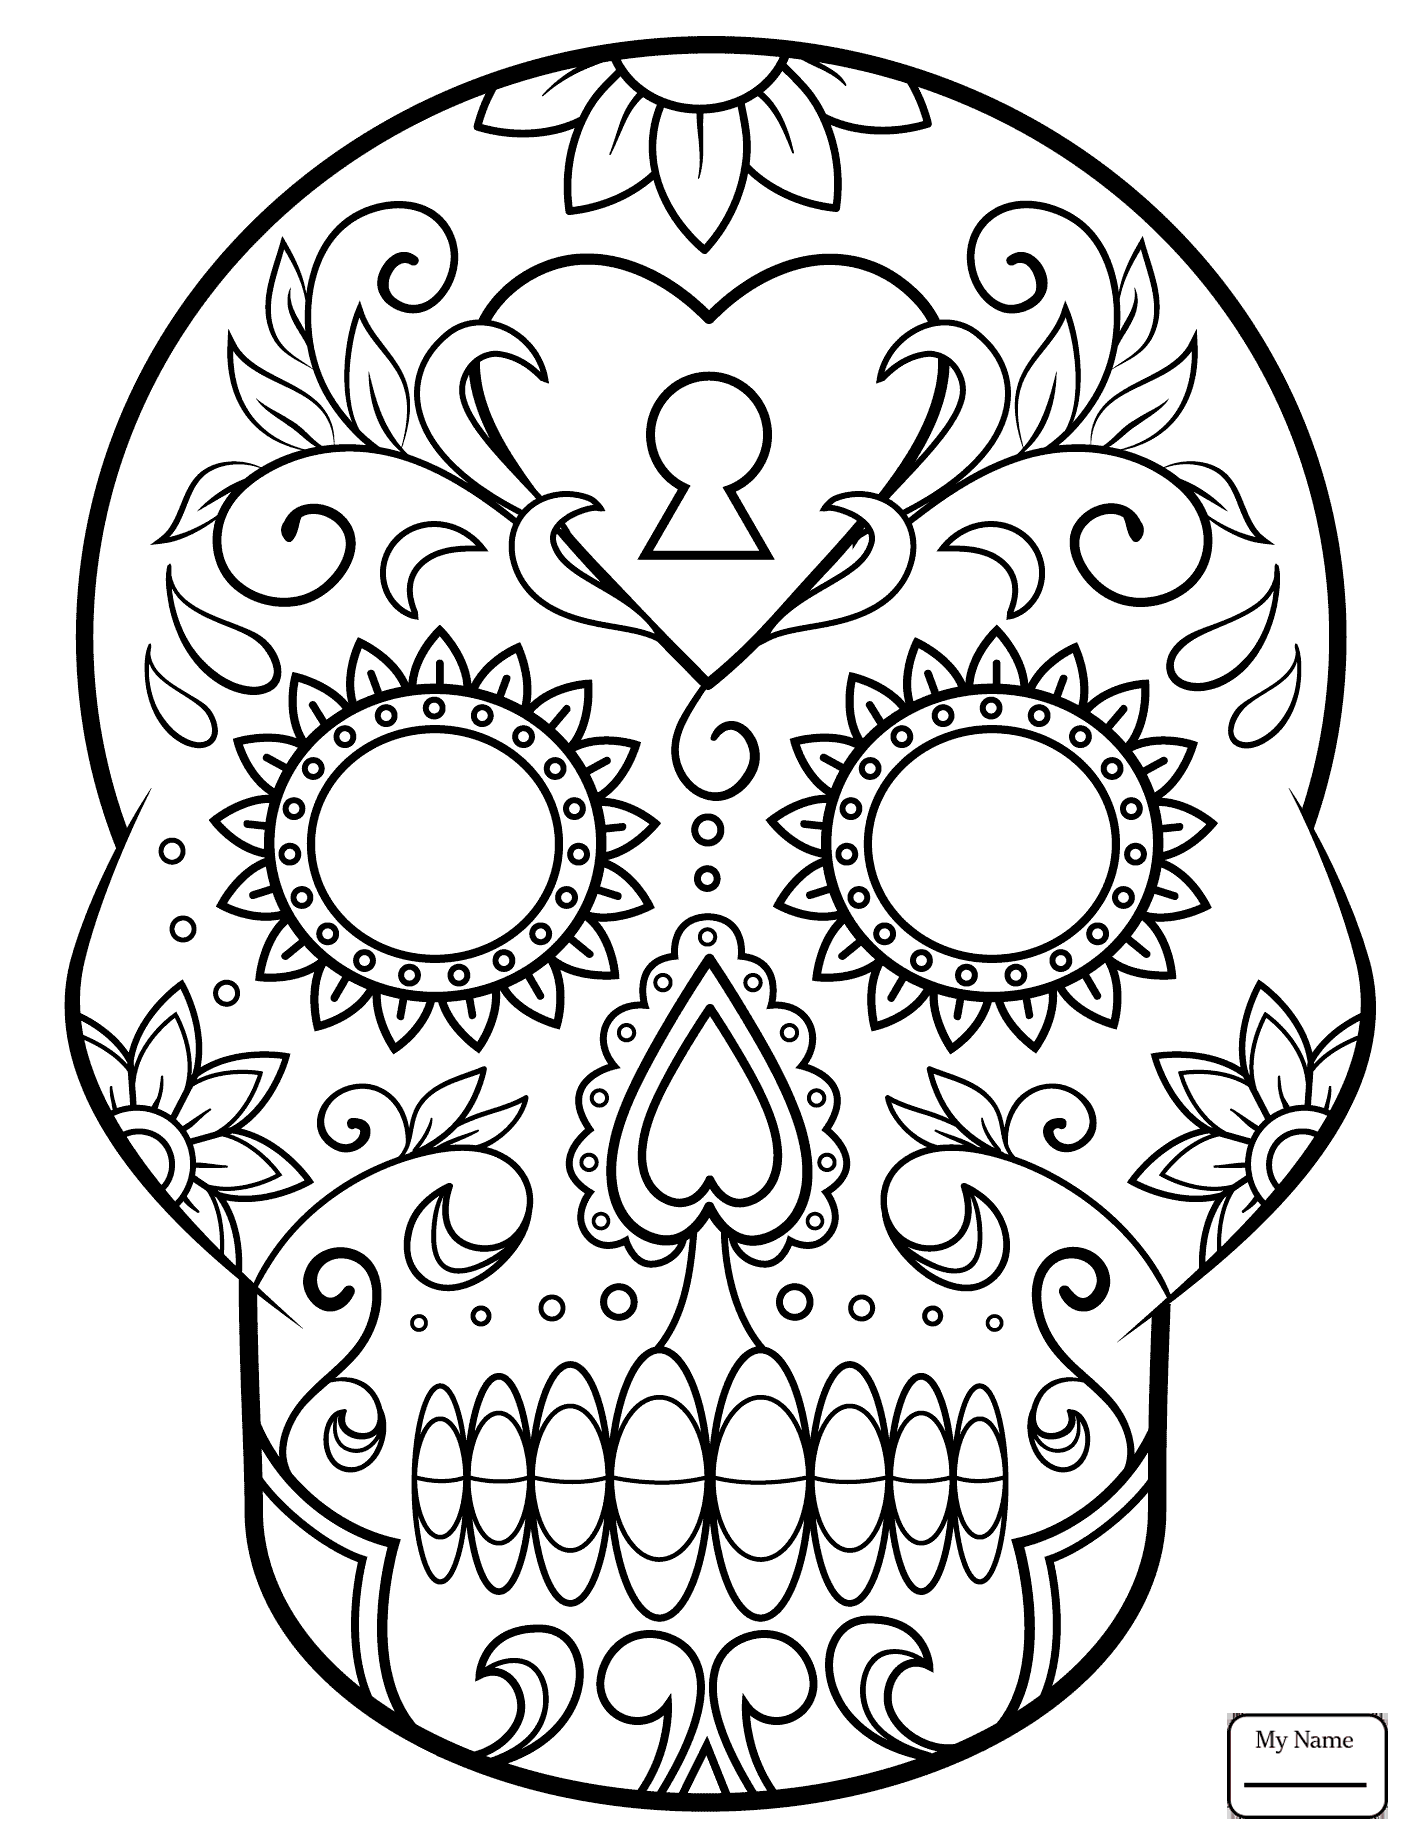 sugar skull template day of the dead masks sugar skulls free printable paper template sugar skull